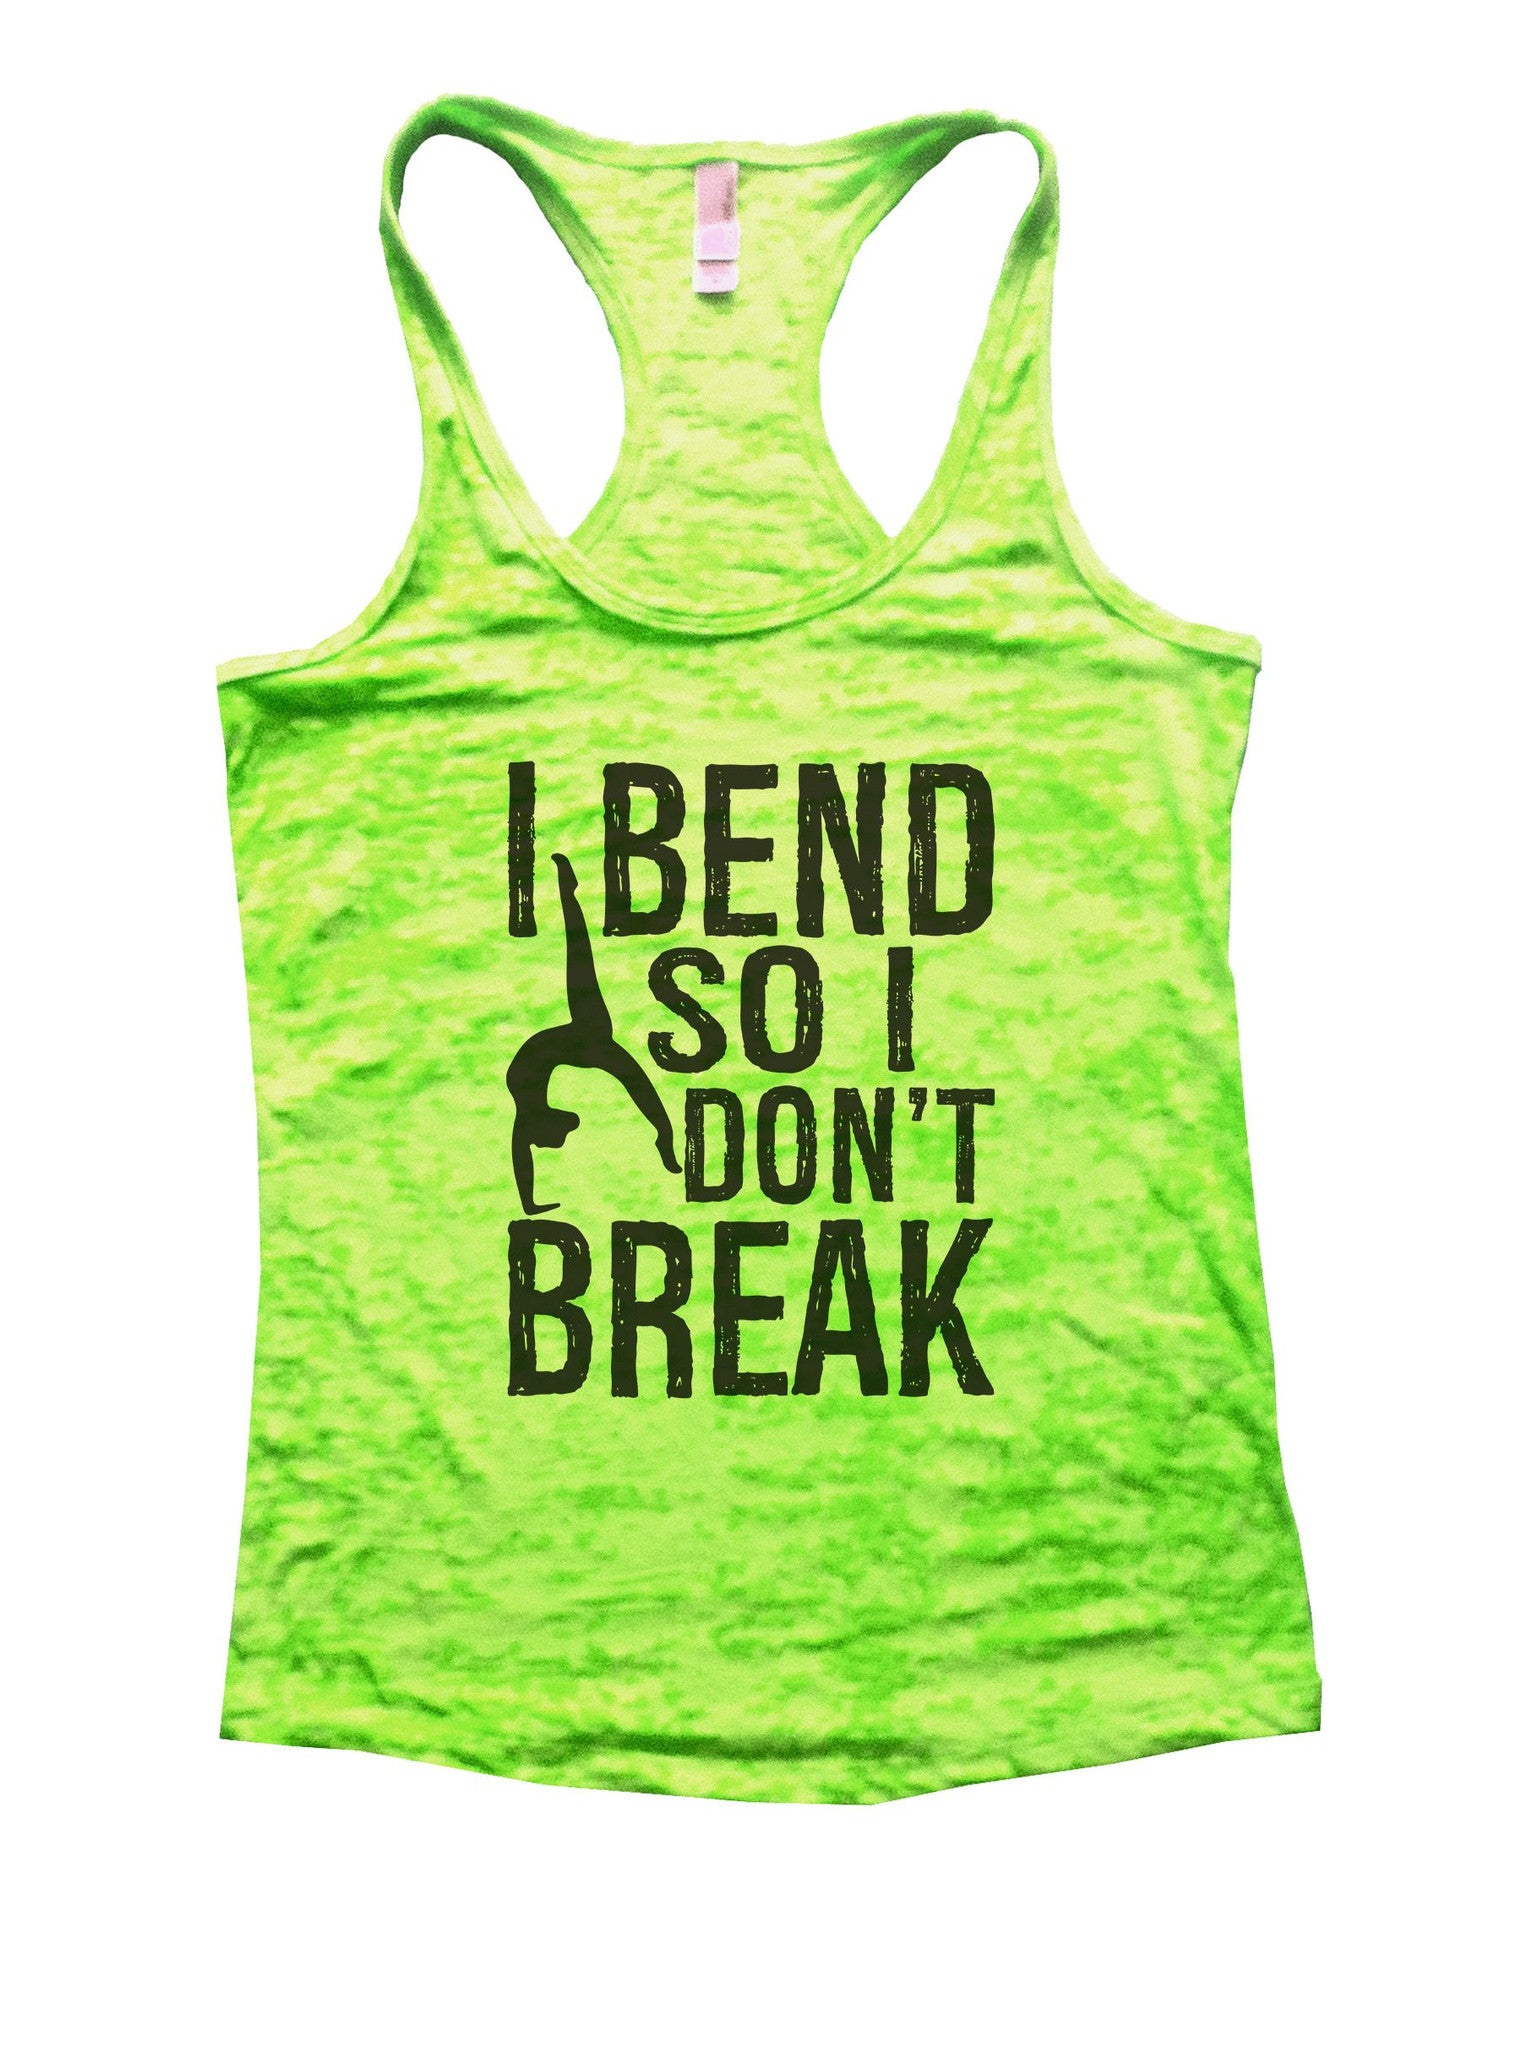 I Bend So I Don't Break Burnout Tank Top By BurnoutTankTops.com - 942 - Funny Shirts Tank Tops Burnouts and Triblends  - 1